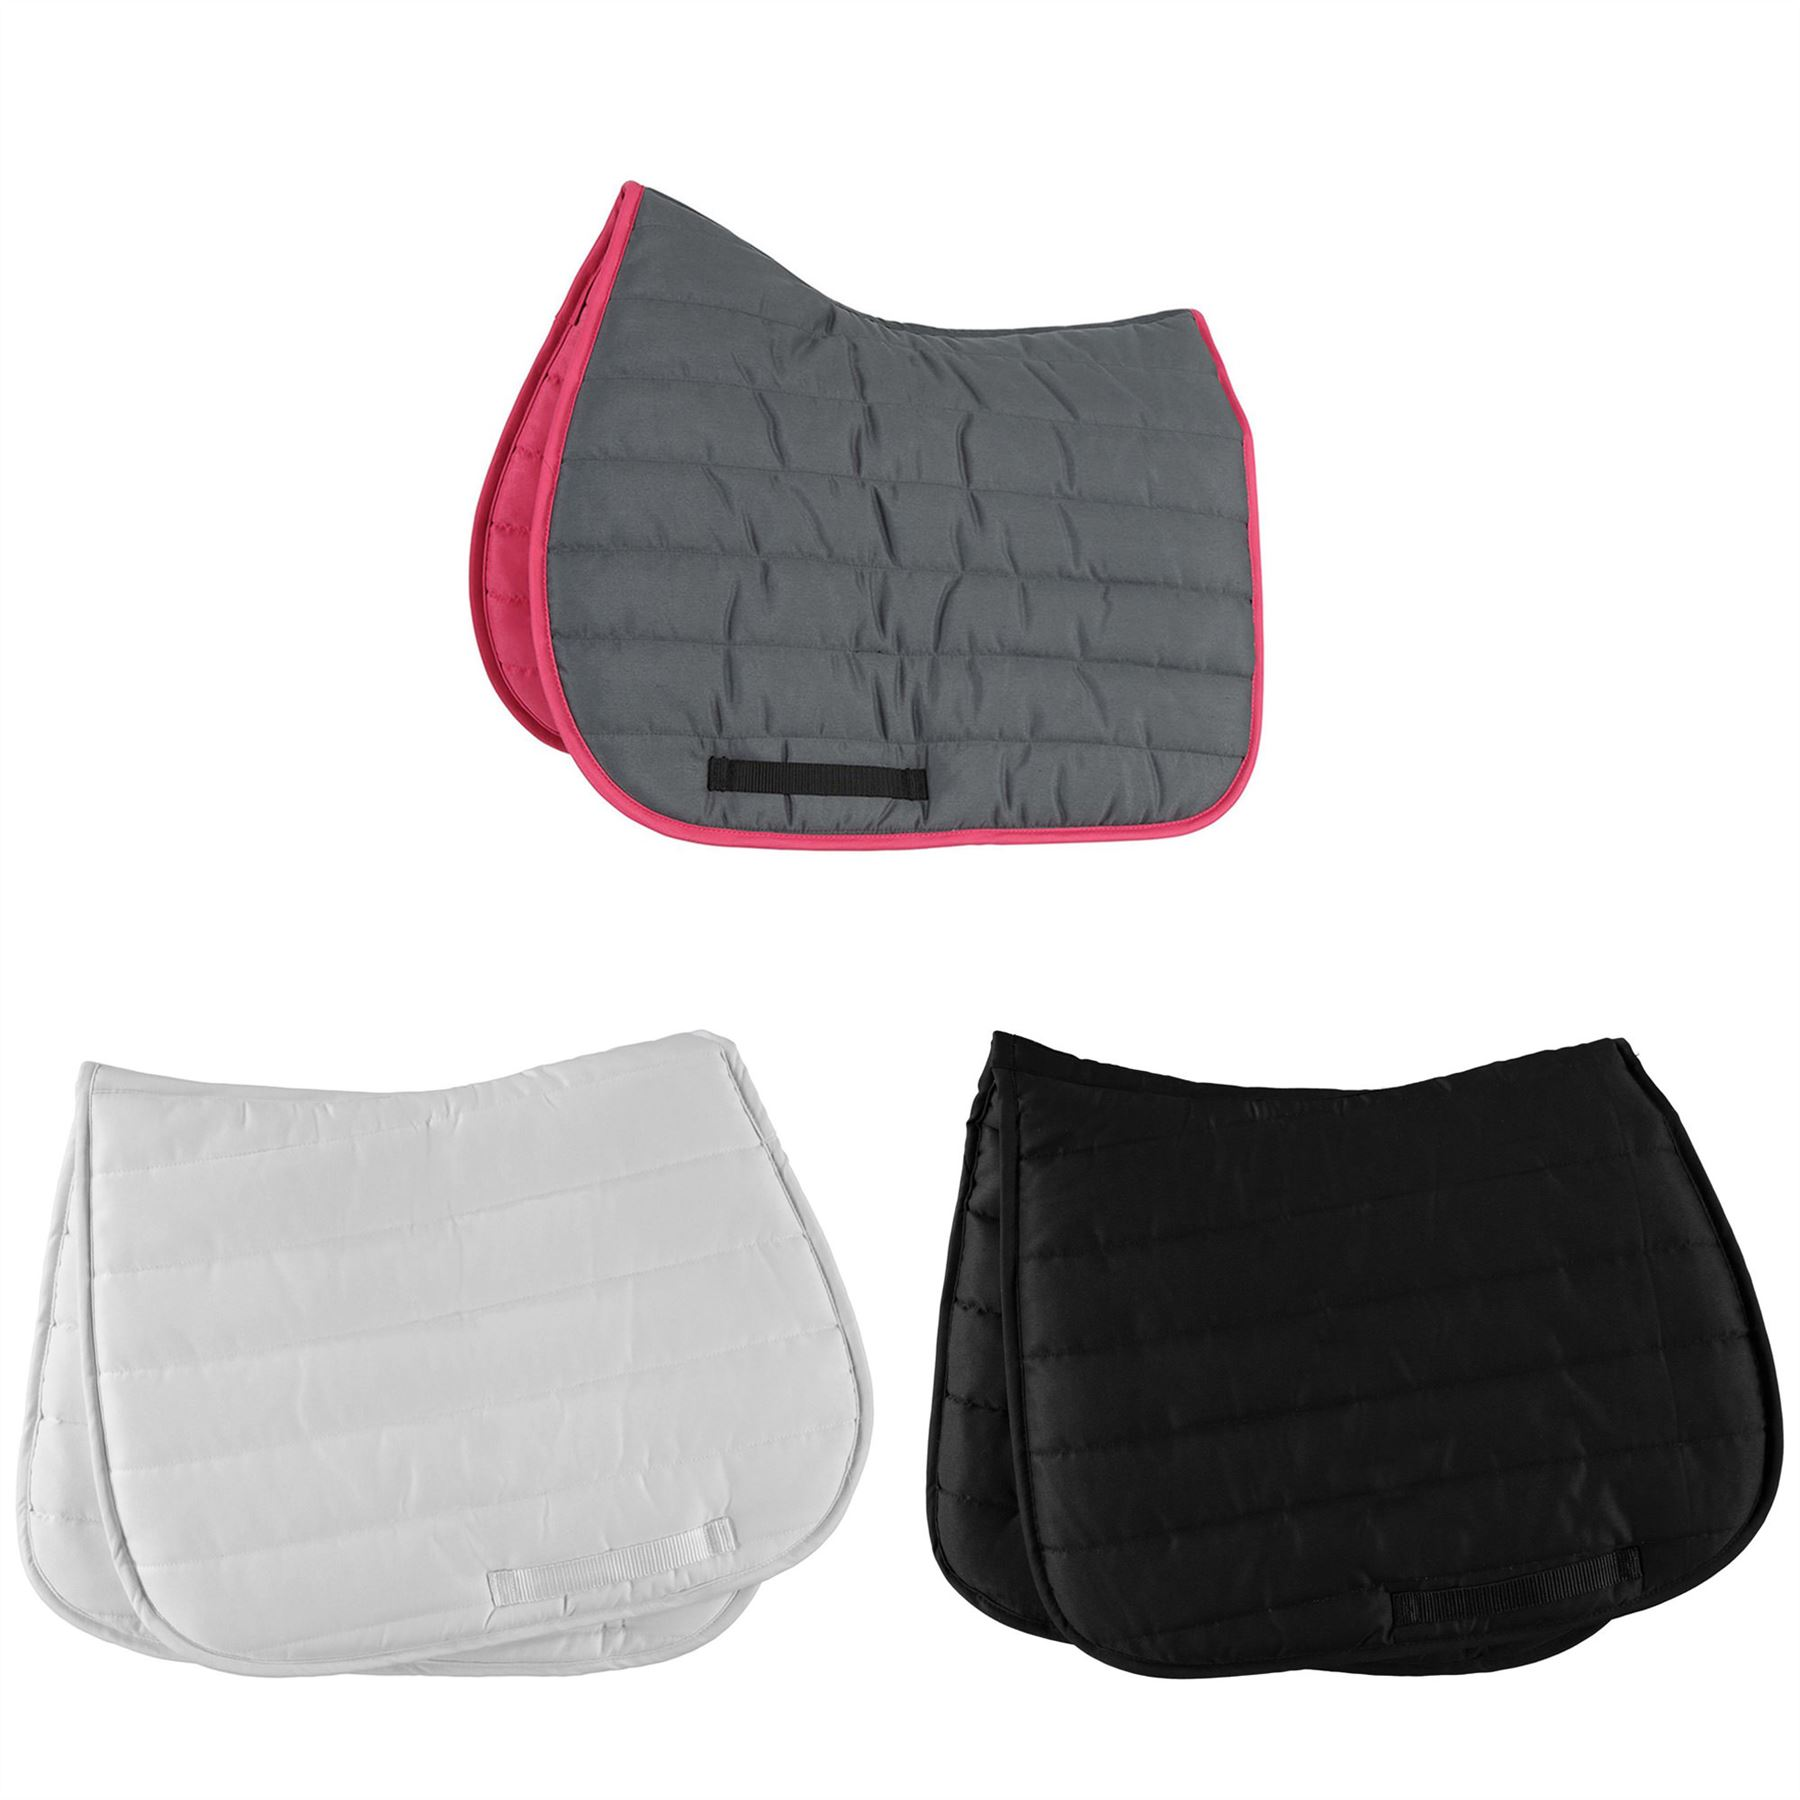 Shires Wessex High Wither Comfort Saddle Cloth Numnah Pad